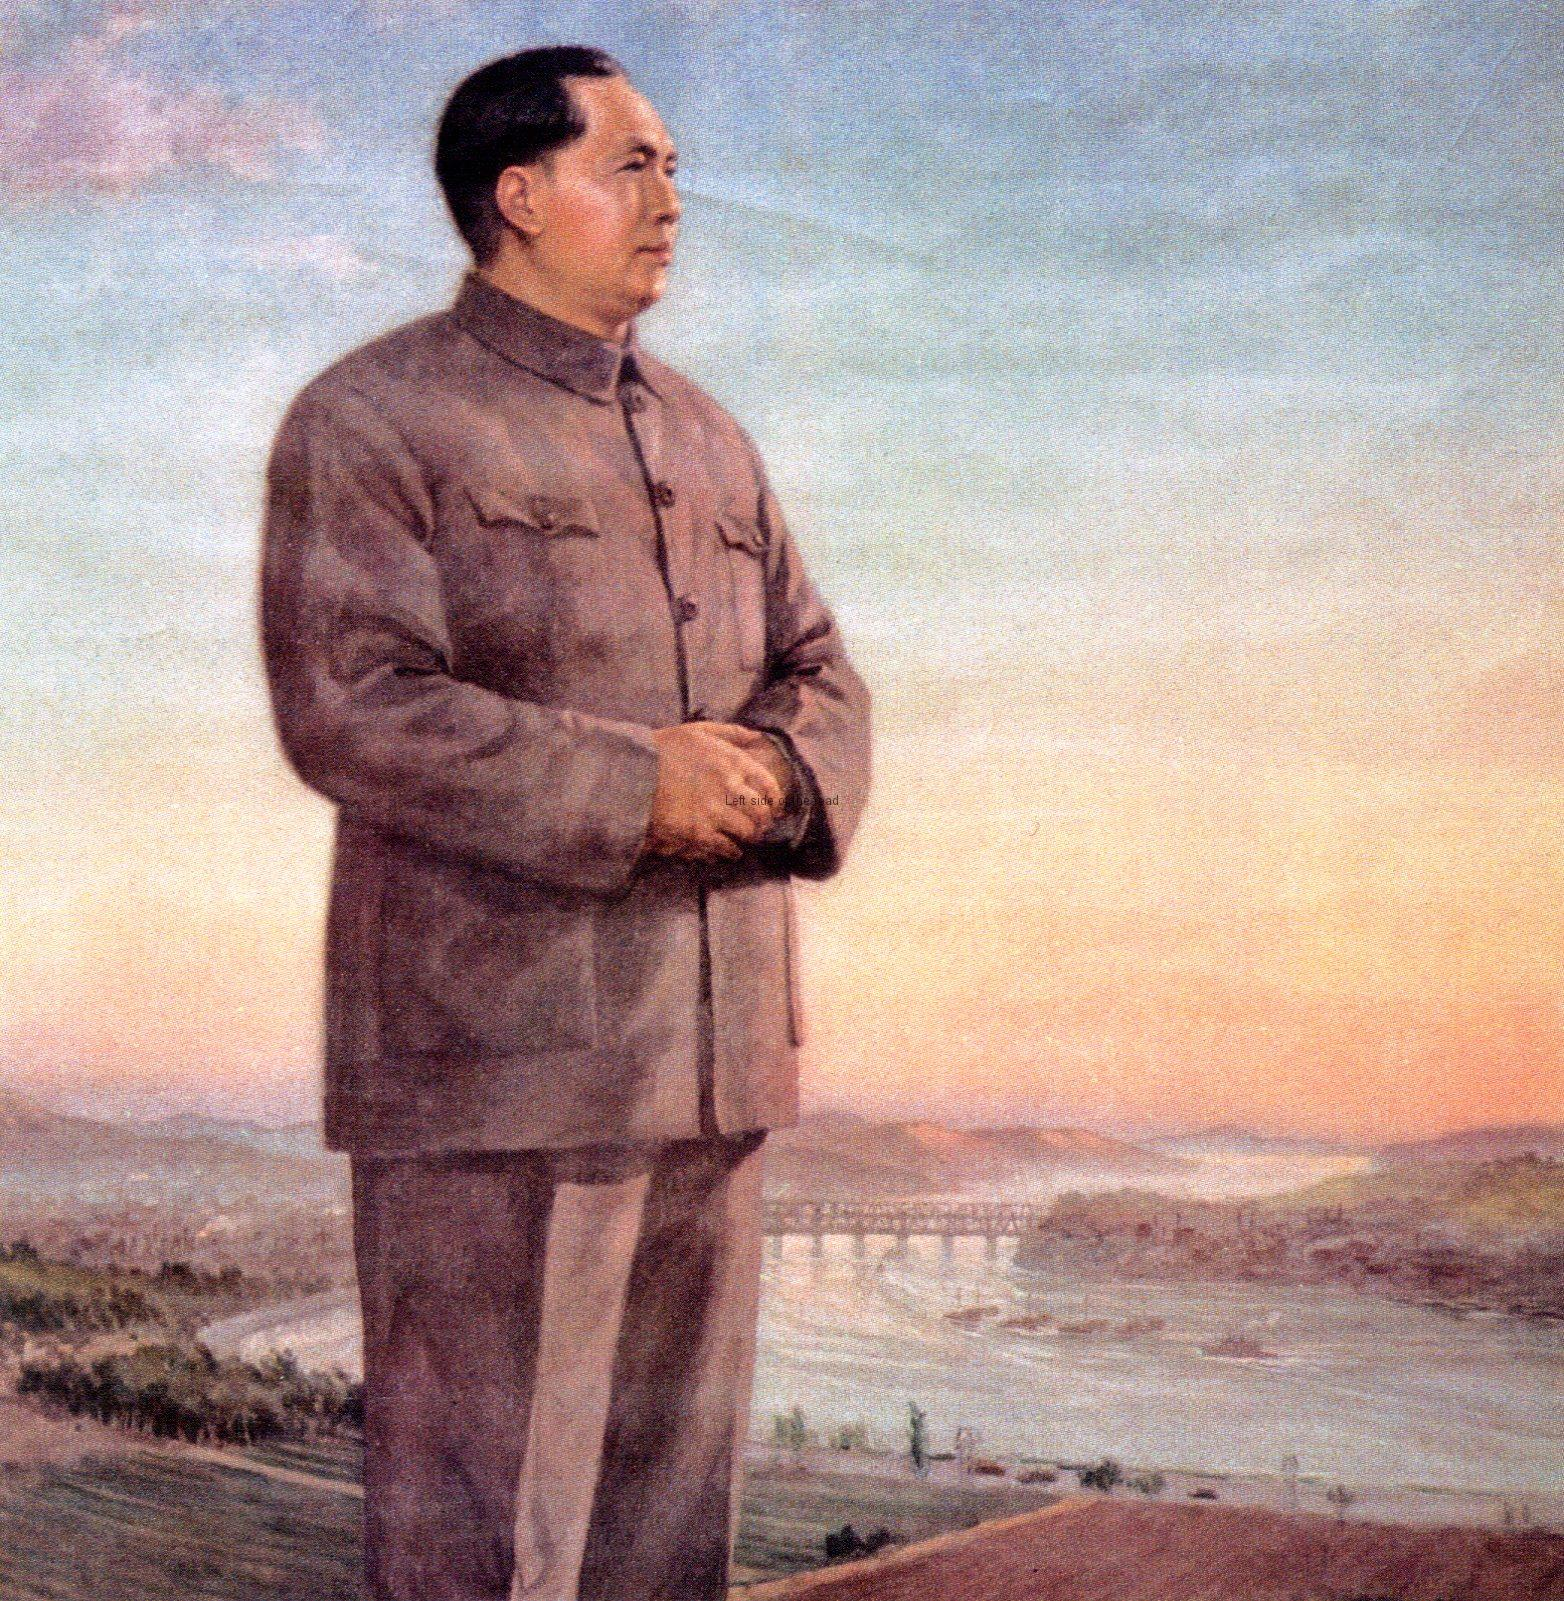 an essay on mao tse tung Mao zedong essay - get started with research paper writing and craft greatest essay ever all sorts of writing services & custom essays let specialists accomplish their tasks: order the.